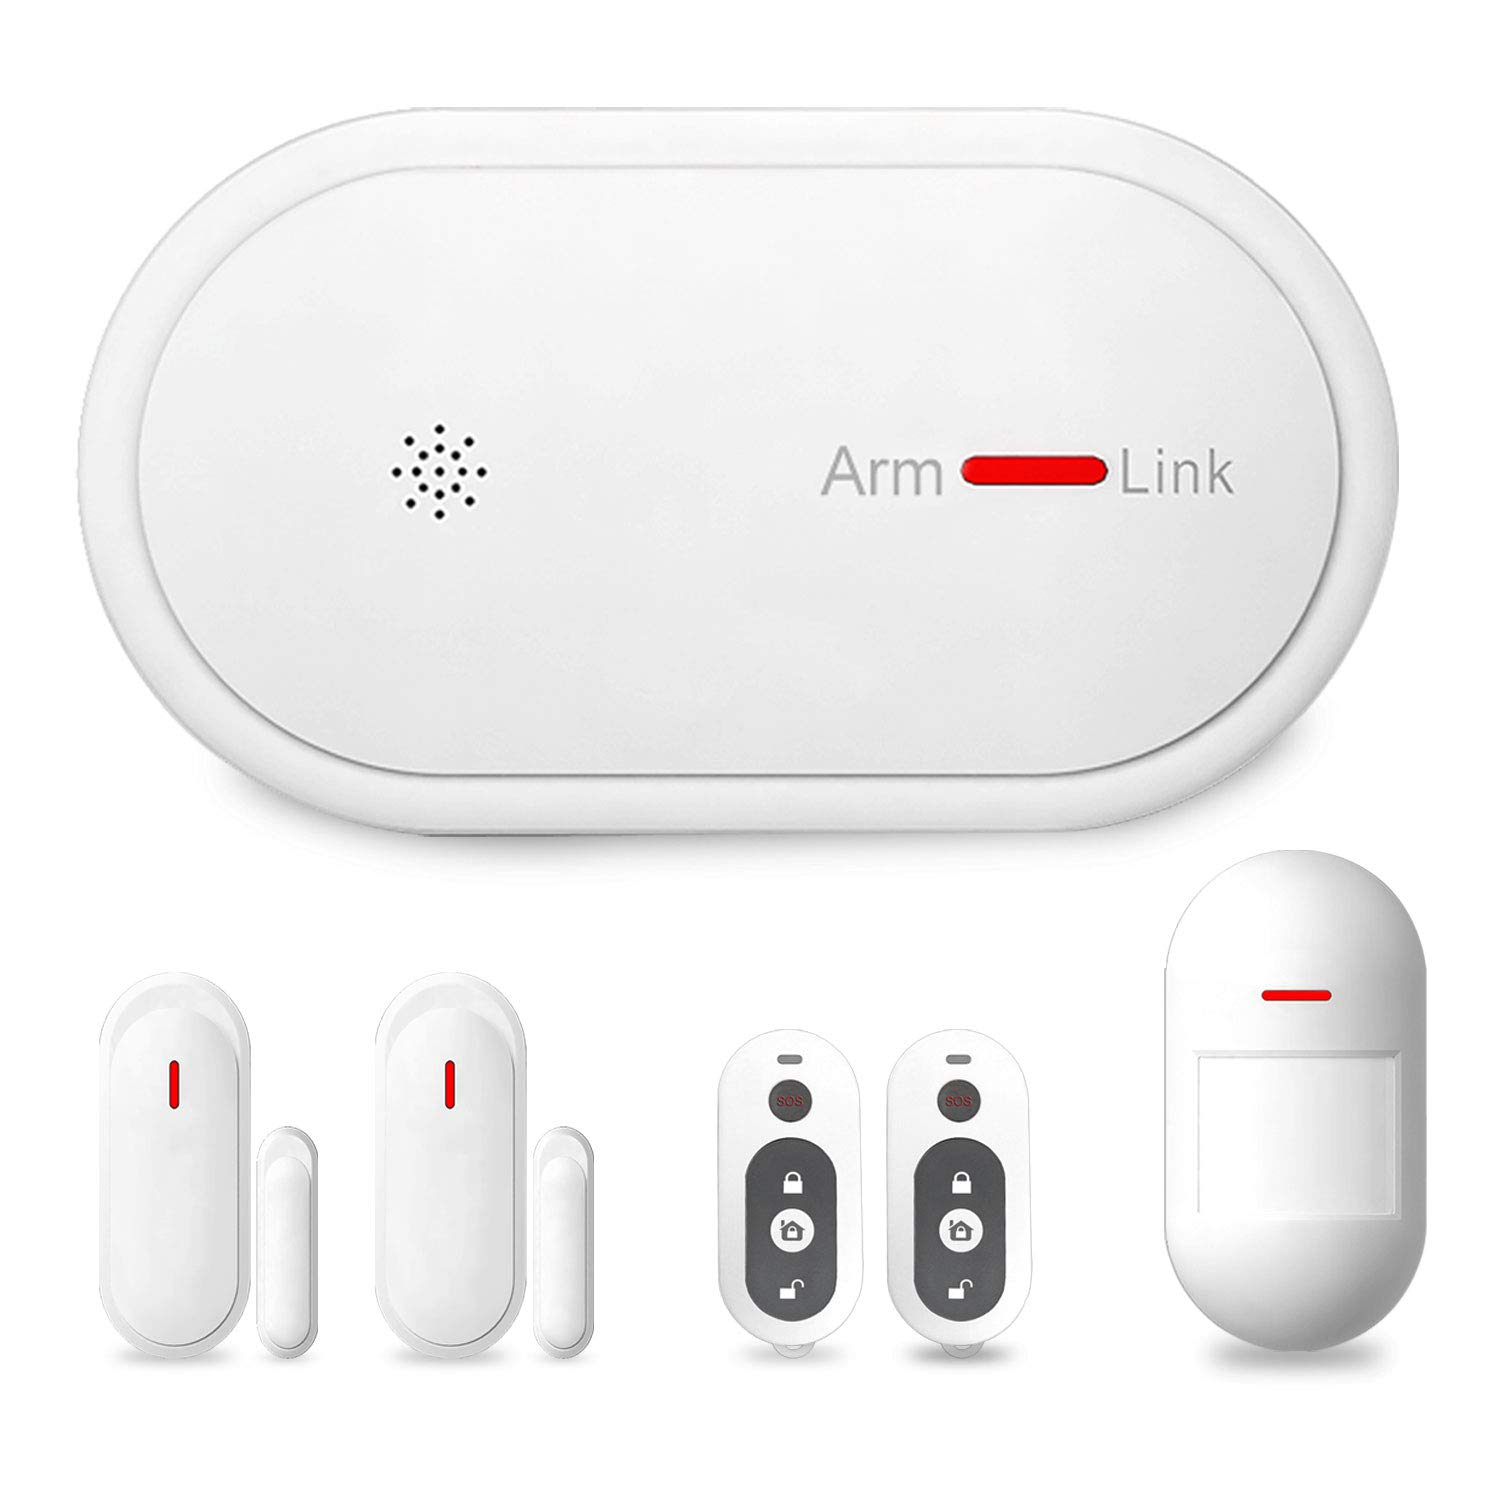 Eslibai 2.4Ghz WiFi GSM Home Security Alarm System DIY Kit with APP Remote Control,APP Push Notification,0-300s Delay Arm, Auto Dial and No Monthly Fee, Expandable 32 Sensors for Home Office